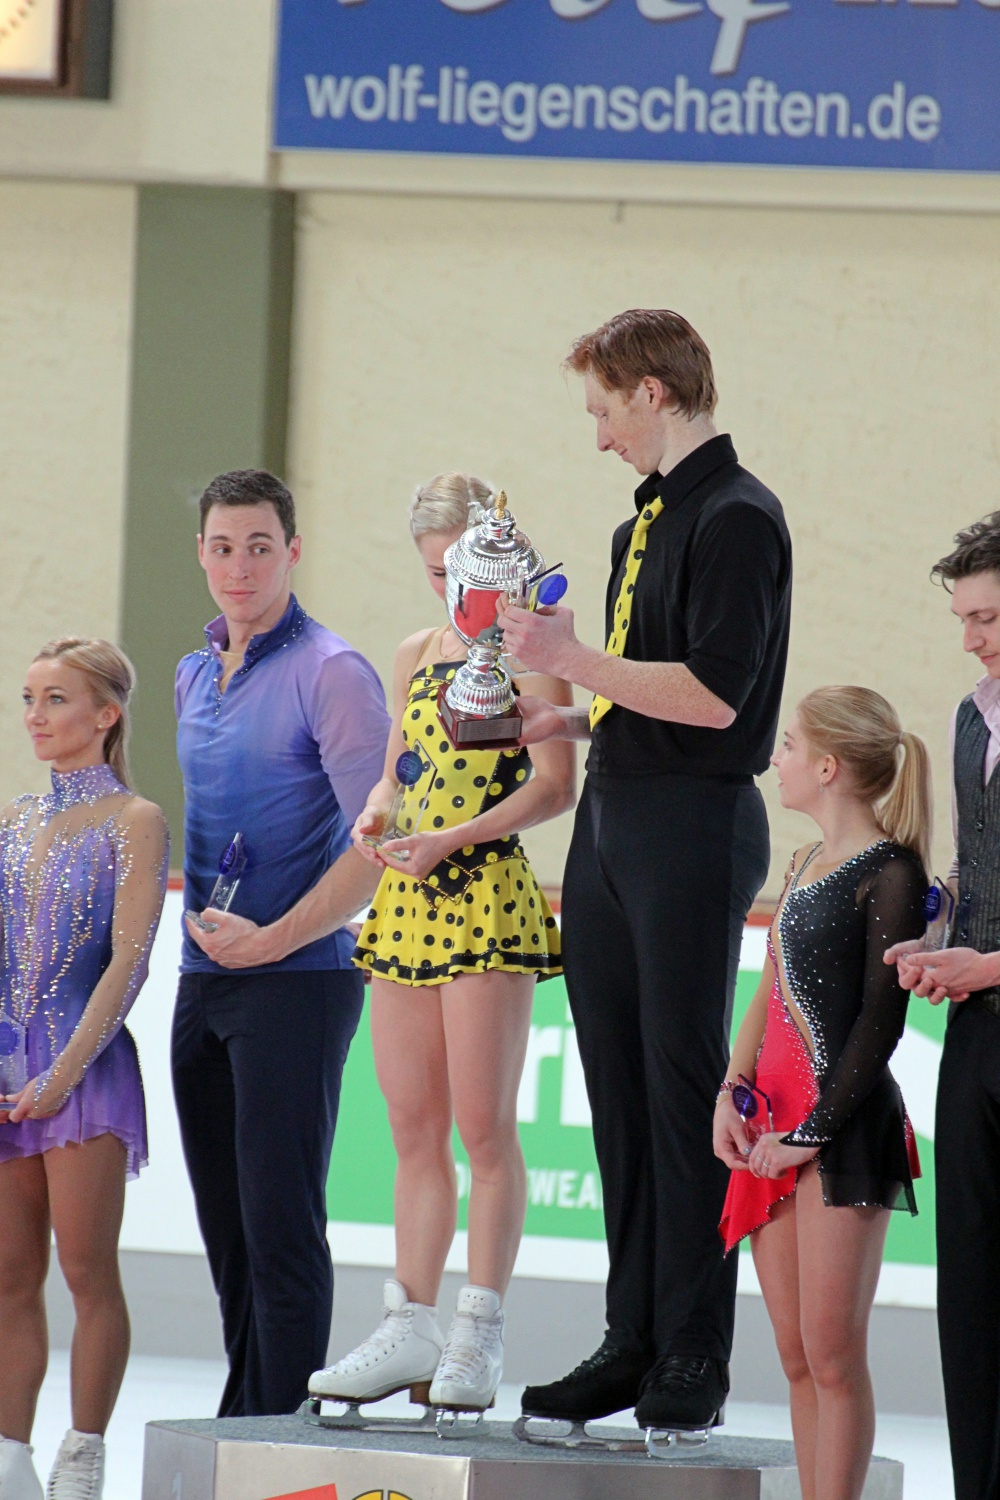 The podium - Massot looks like he really wants this trophy